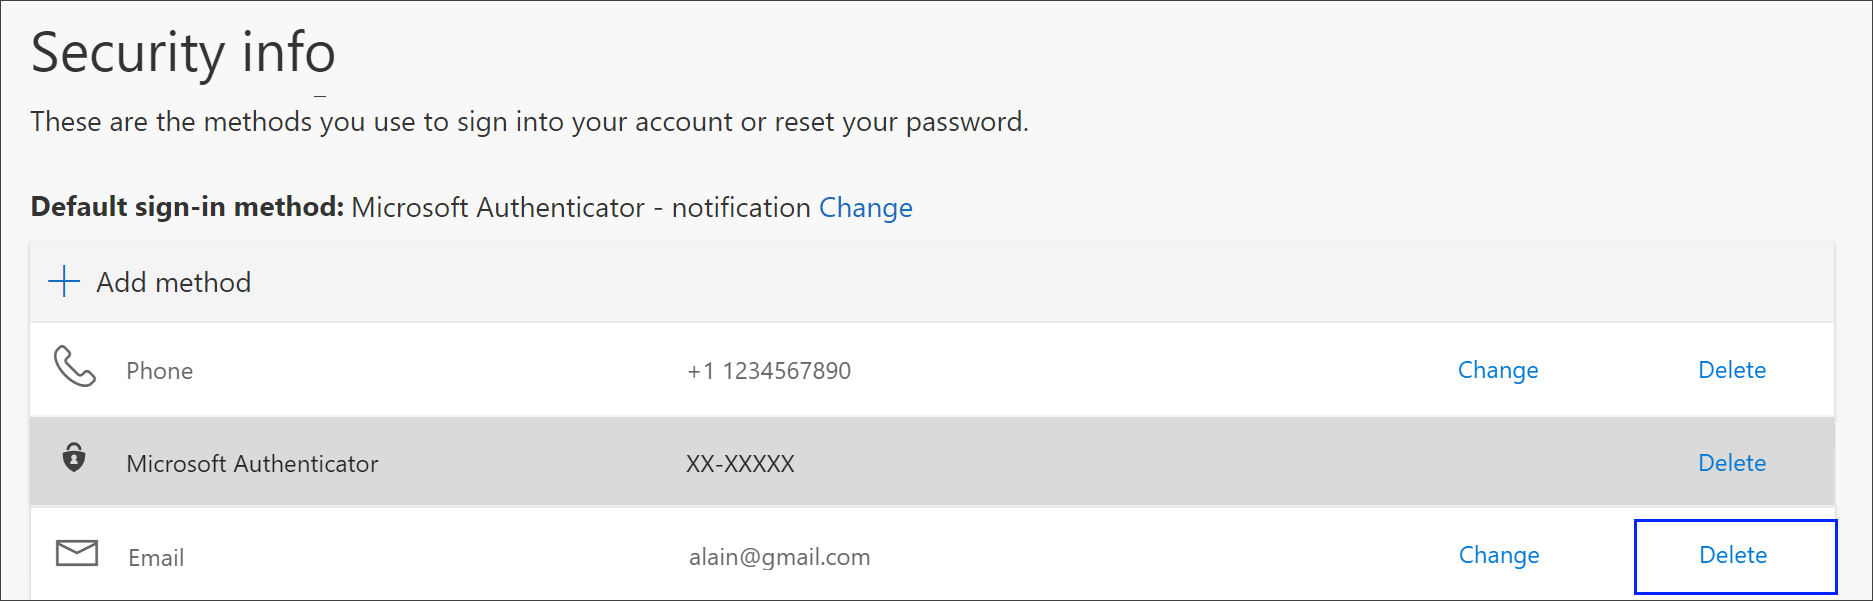 Link to delete the phone method from security info